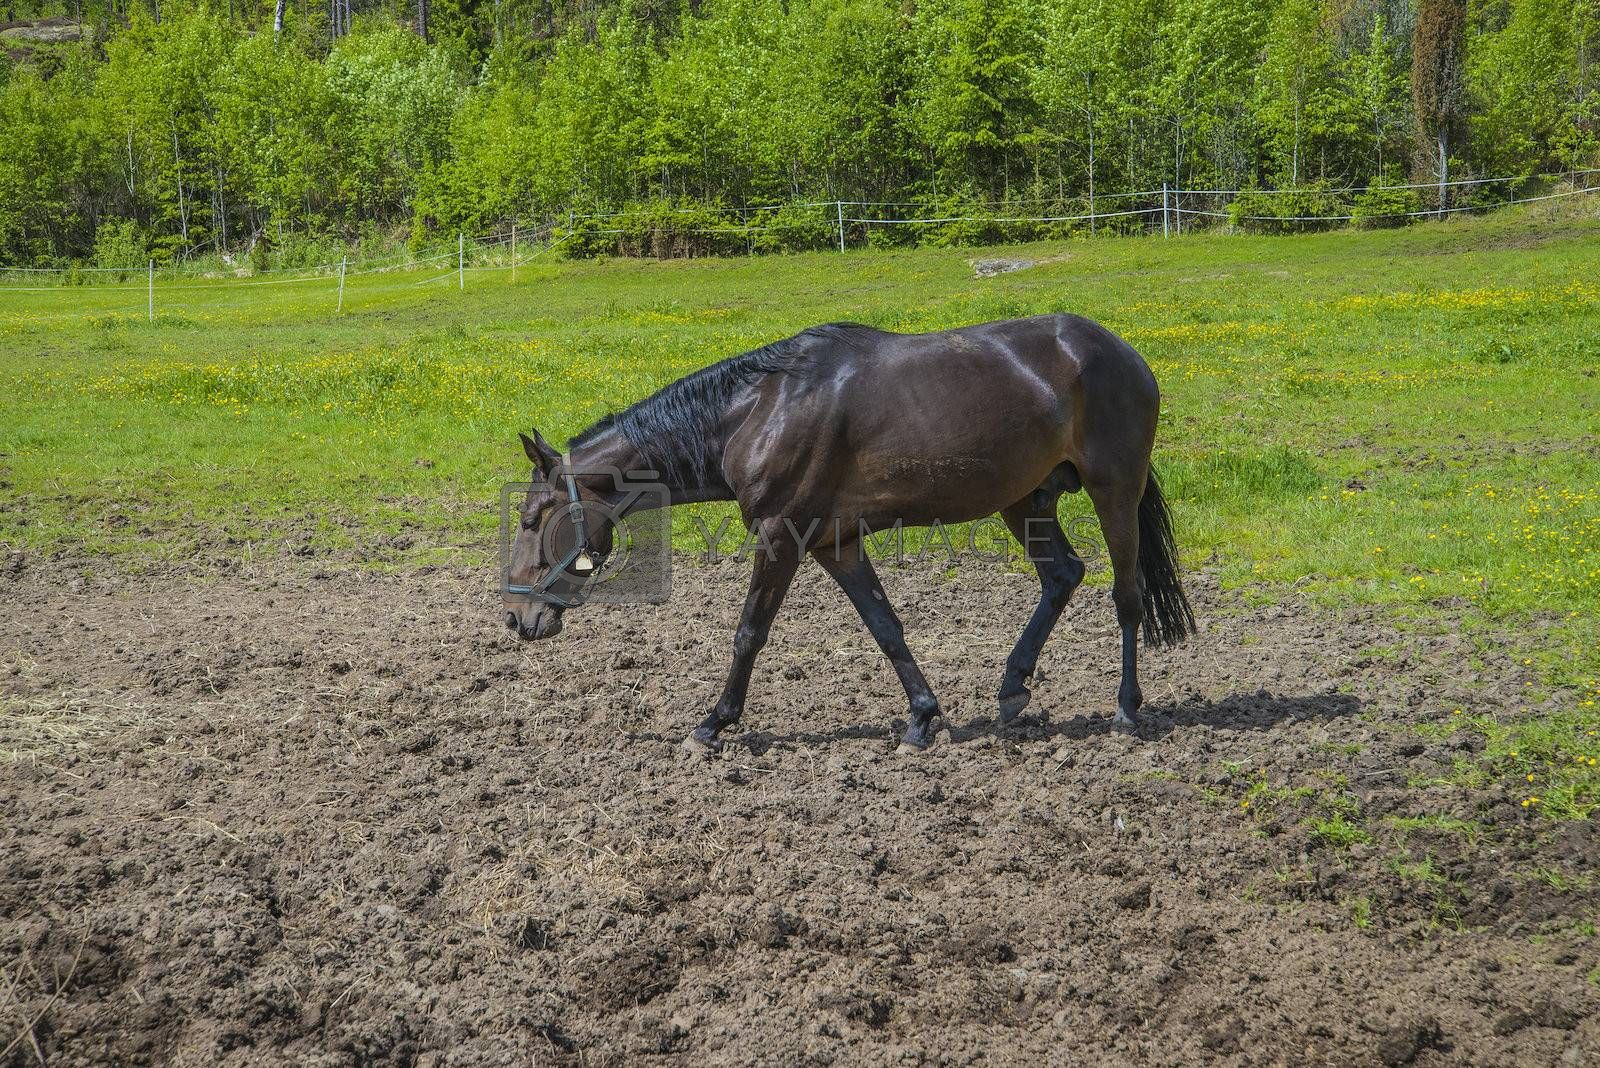 The image is shot at a farm in Aremark municipality that borders to Halden municipality, Norway